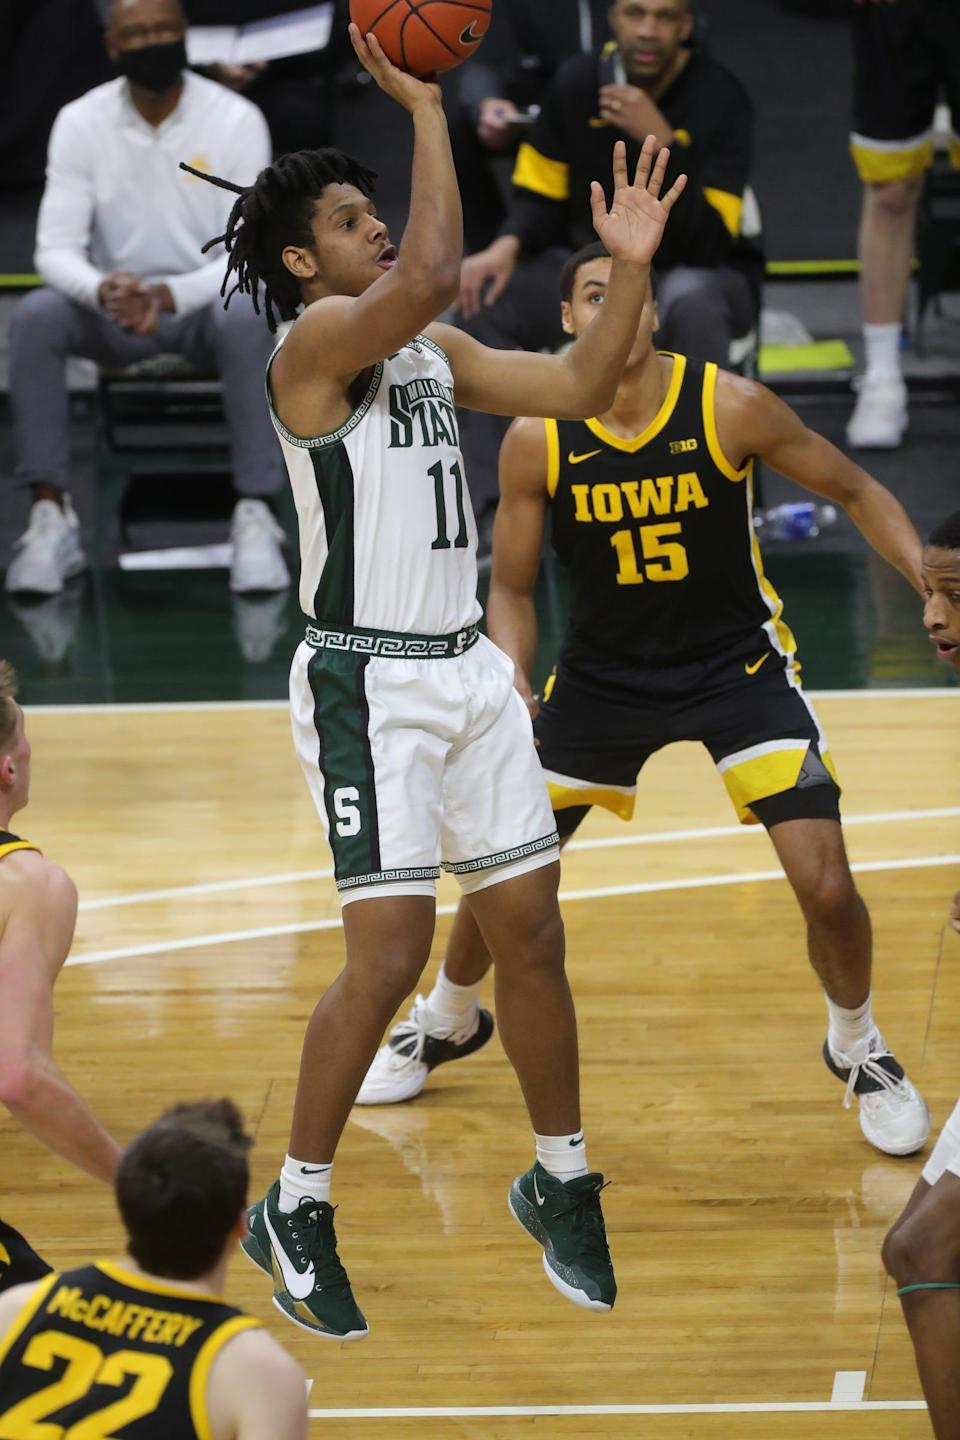 Michigan State Spartans guard A.J. Hoggard (11) shoots against the Iowa Hawkeyes during first half action at Breslin Center Saturday, Feb. 13, 2021.